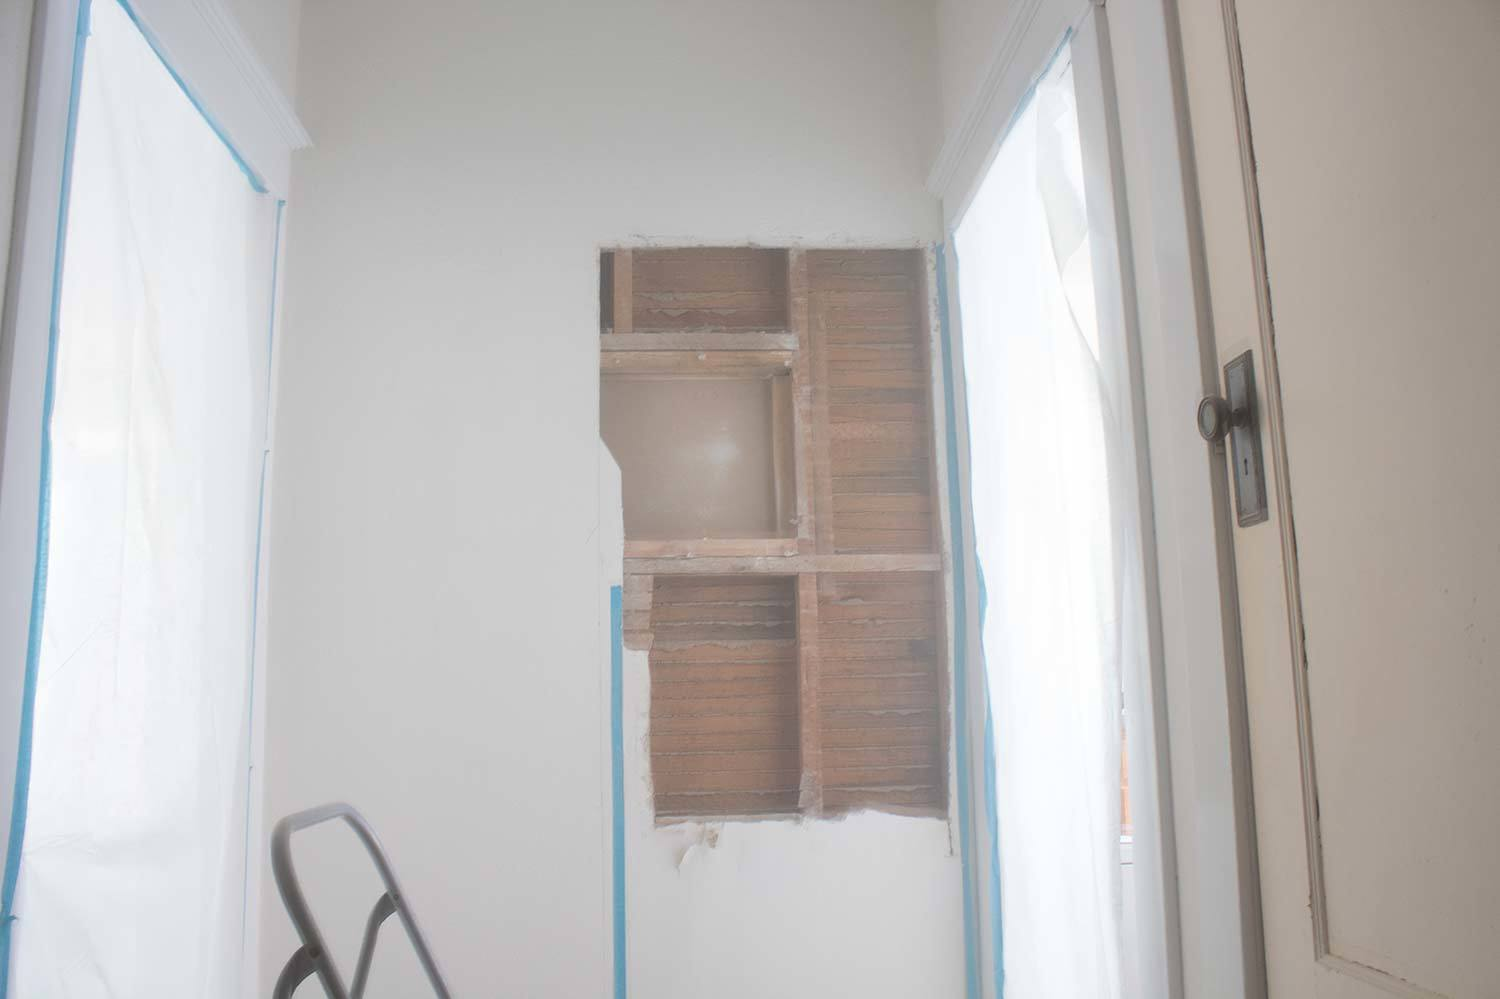 The full process of how I safely opened the wall and added a doorway to my laundry room. #DIY #HomeImprovement #Doorway #OpeningAWall #AButterflyHouse